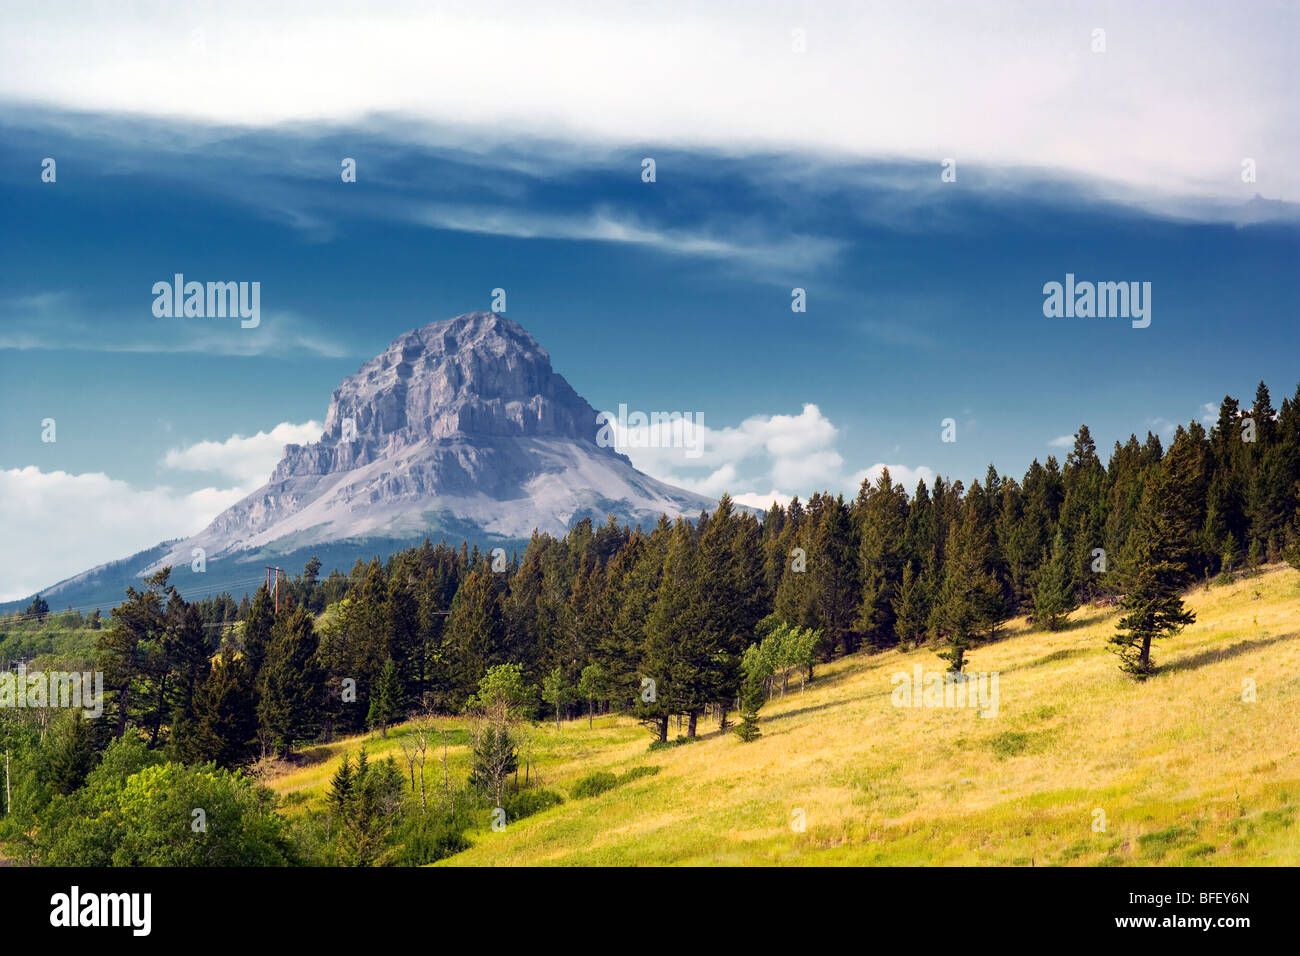 Nid-de-Mountain, Alberta, Canada, Rocheuses, Photo Stock